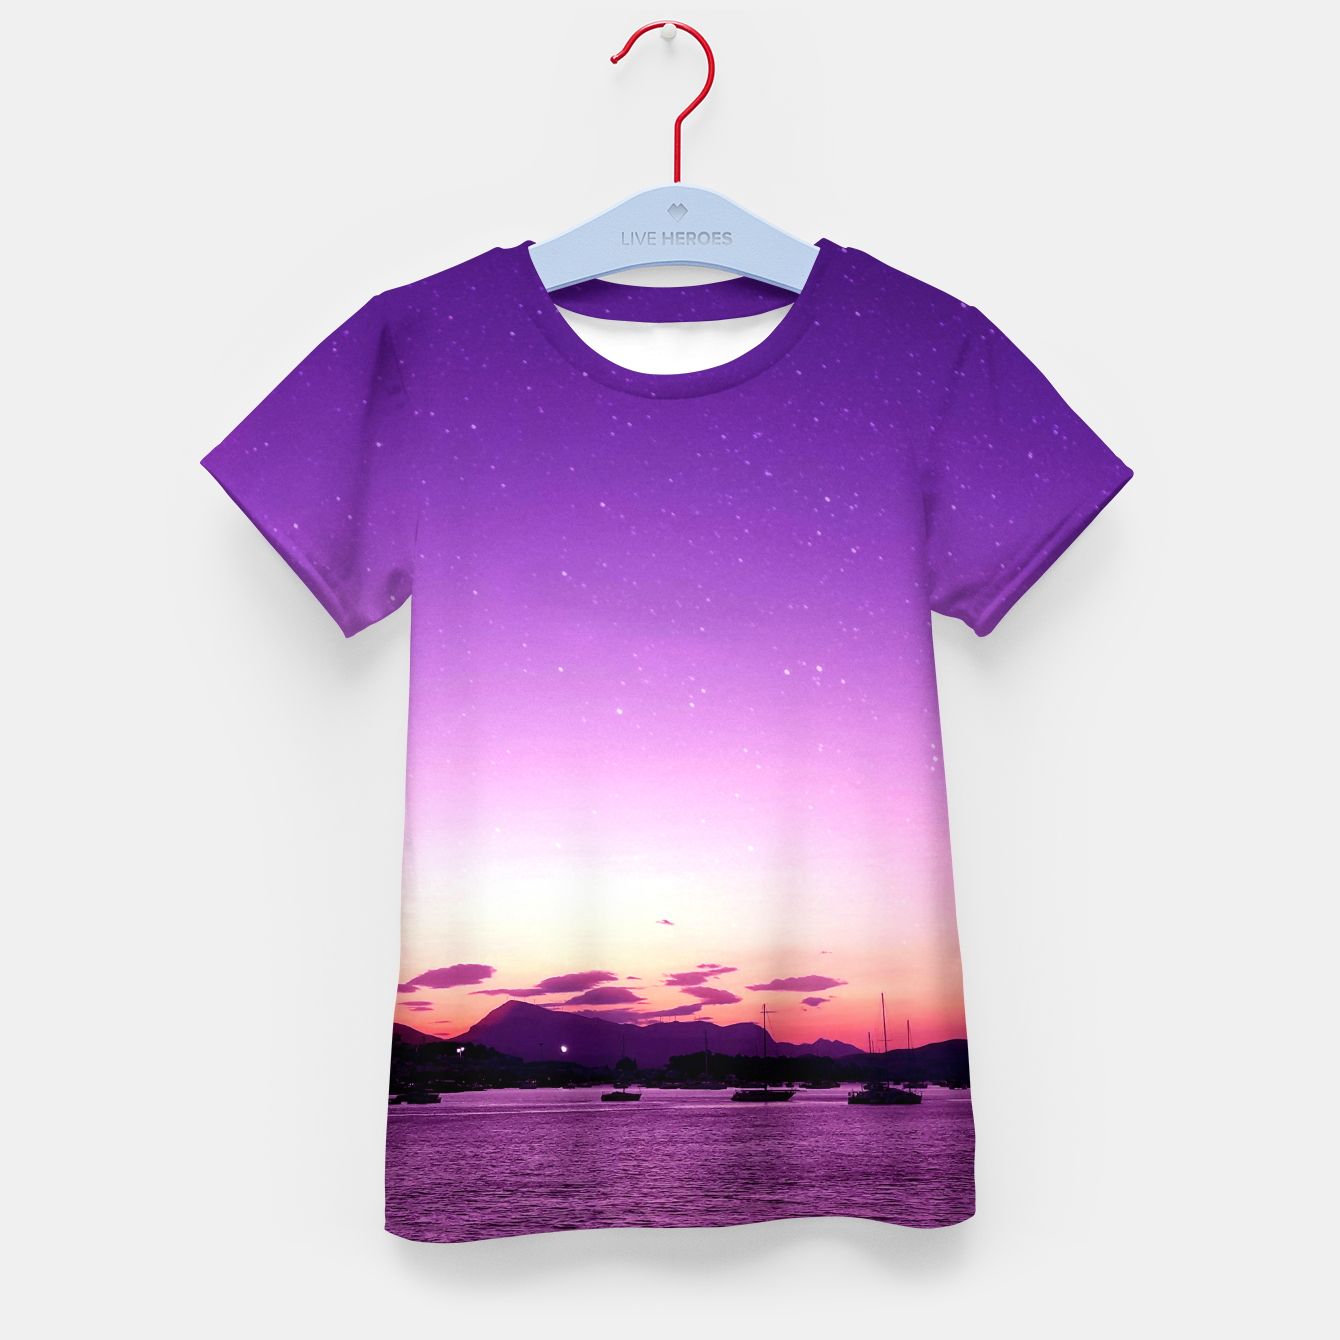 Zdjęcie Sunset in Island Poros Greece Kid's t-shirt - Live Heroes